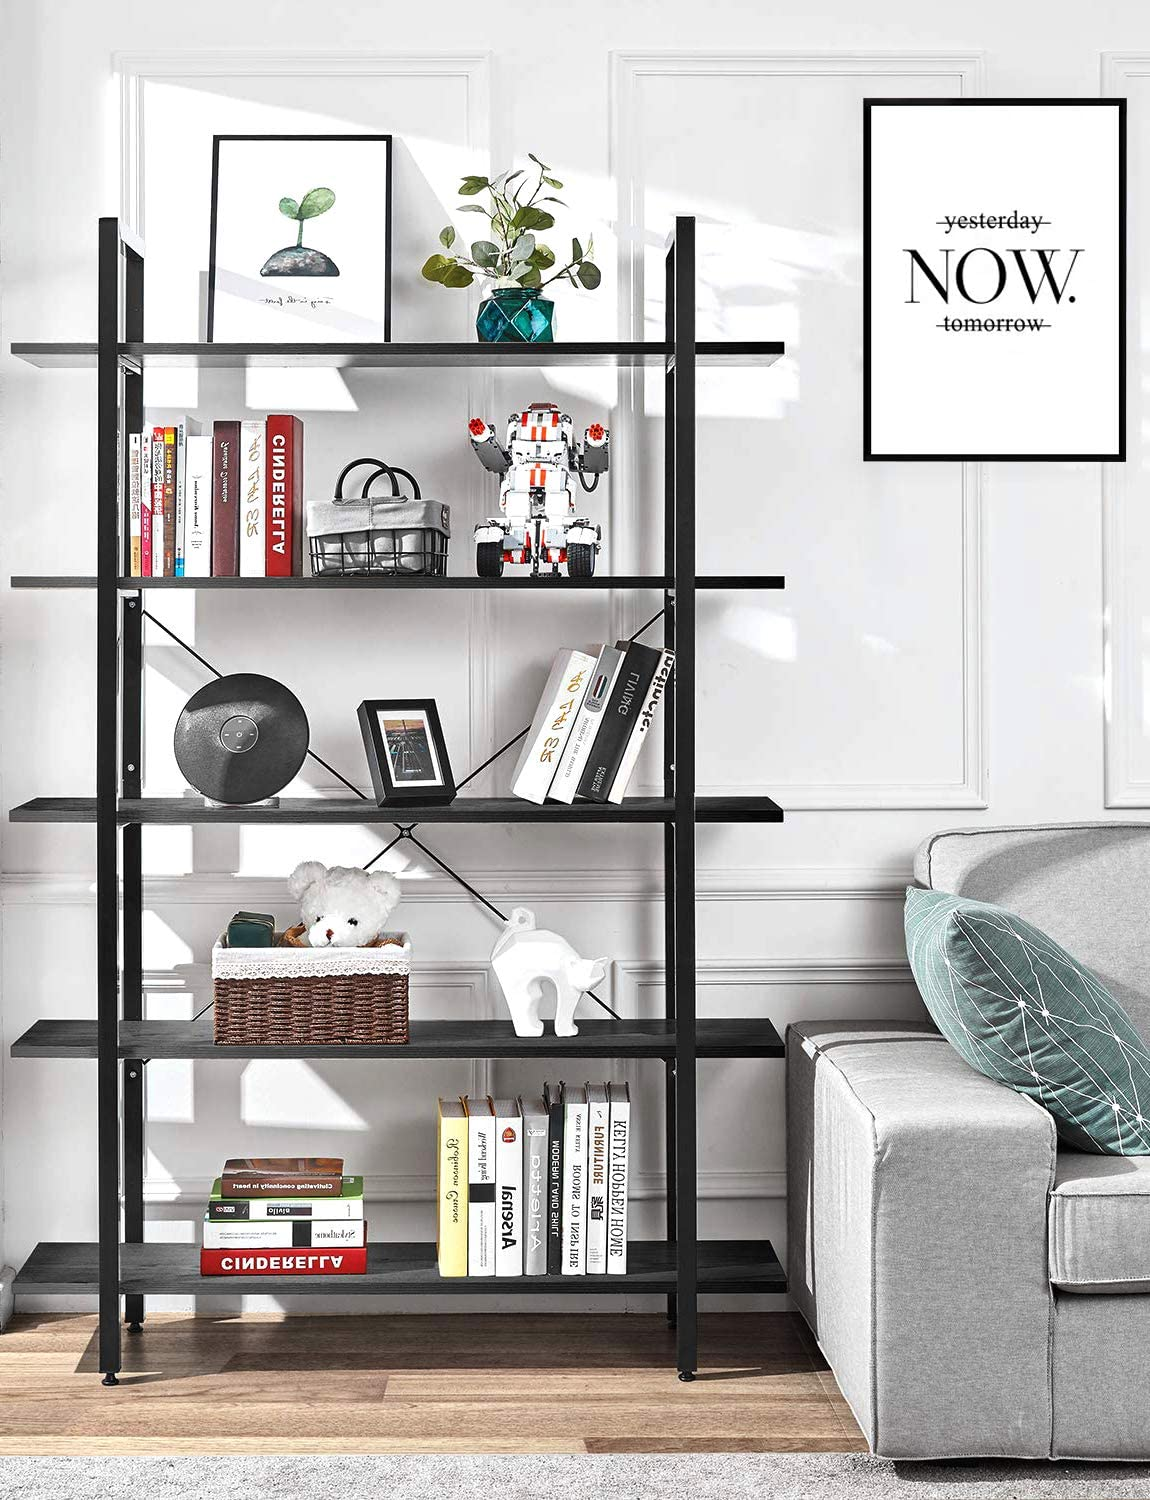 ORAF Bookshelf 5 Tier Bookcase Industrial Bookshelf Vintage Industrial Style Bookcase,Black